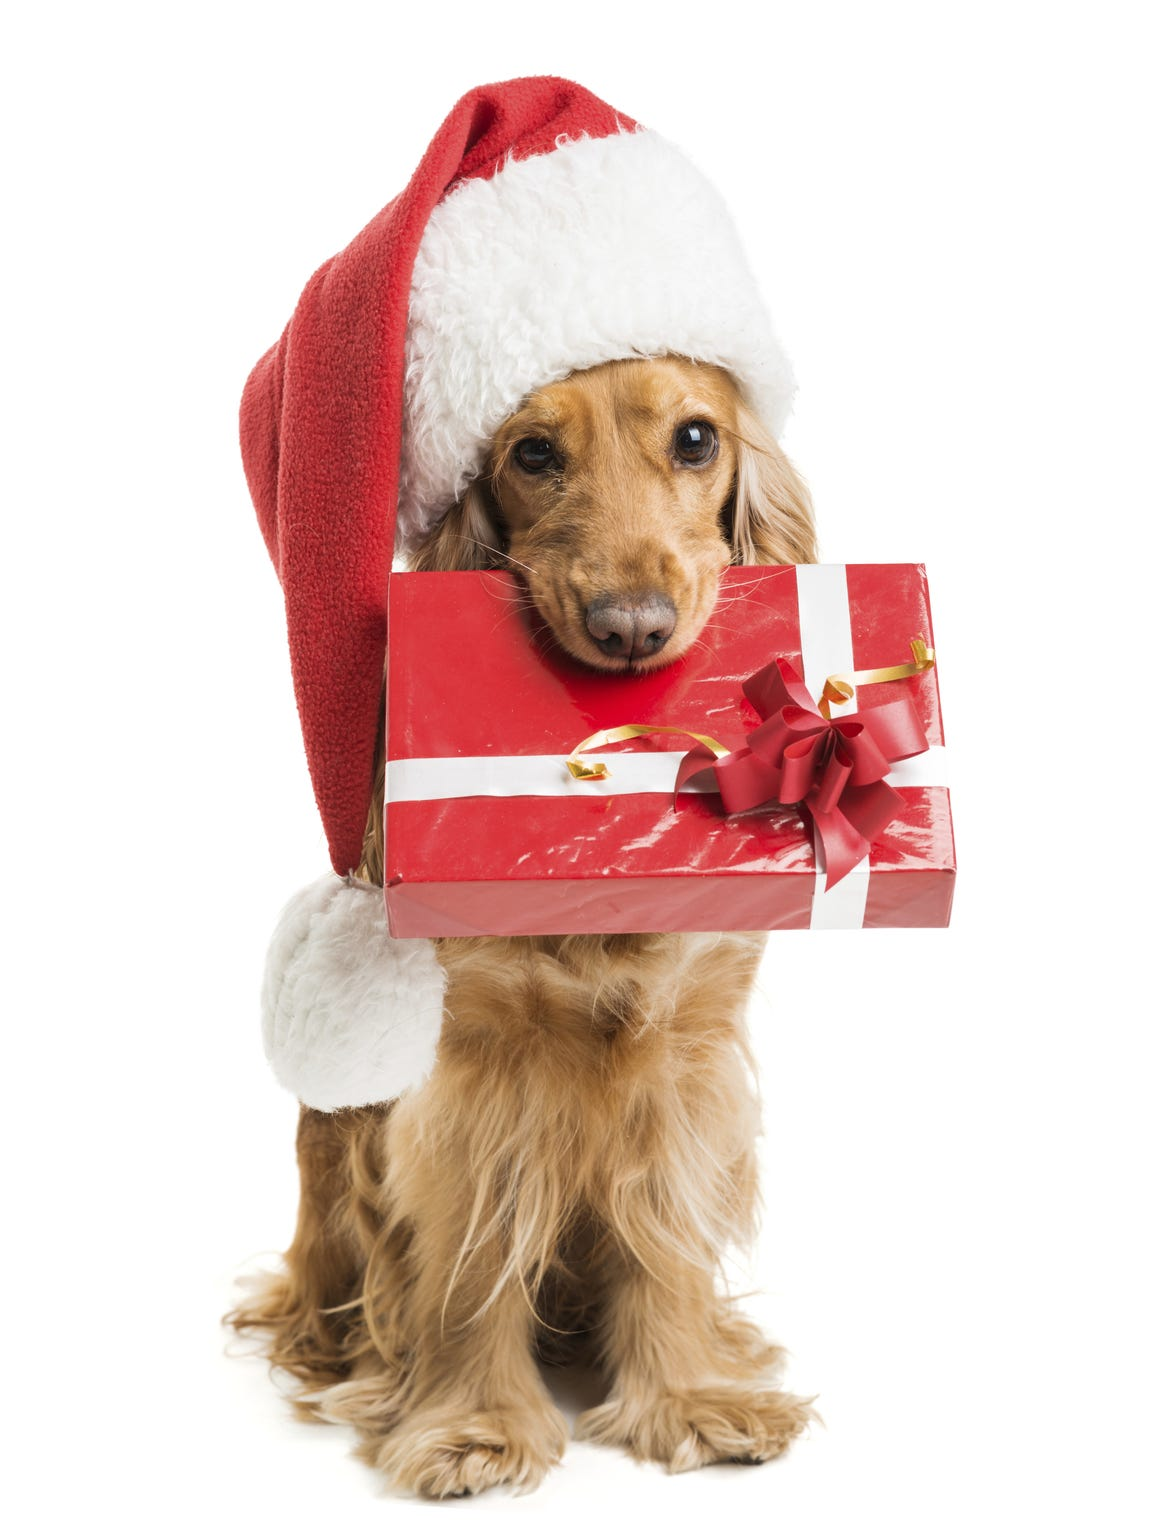 Get a photo of Santa with your dog or cat on Dec. 10